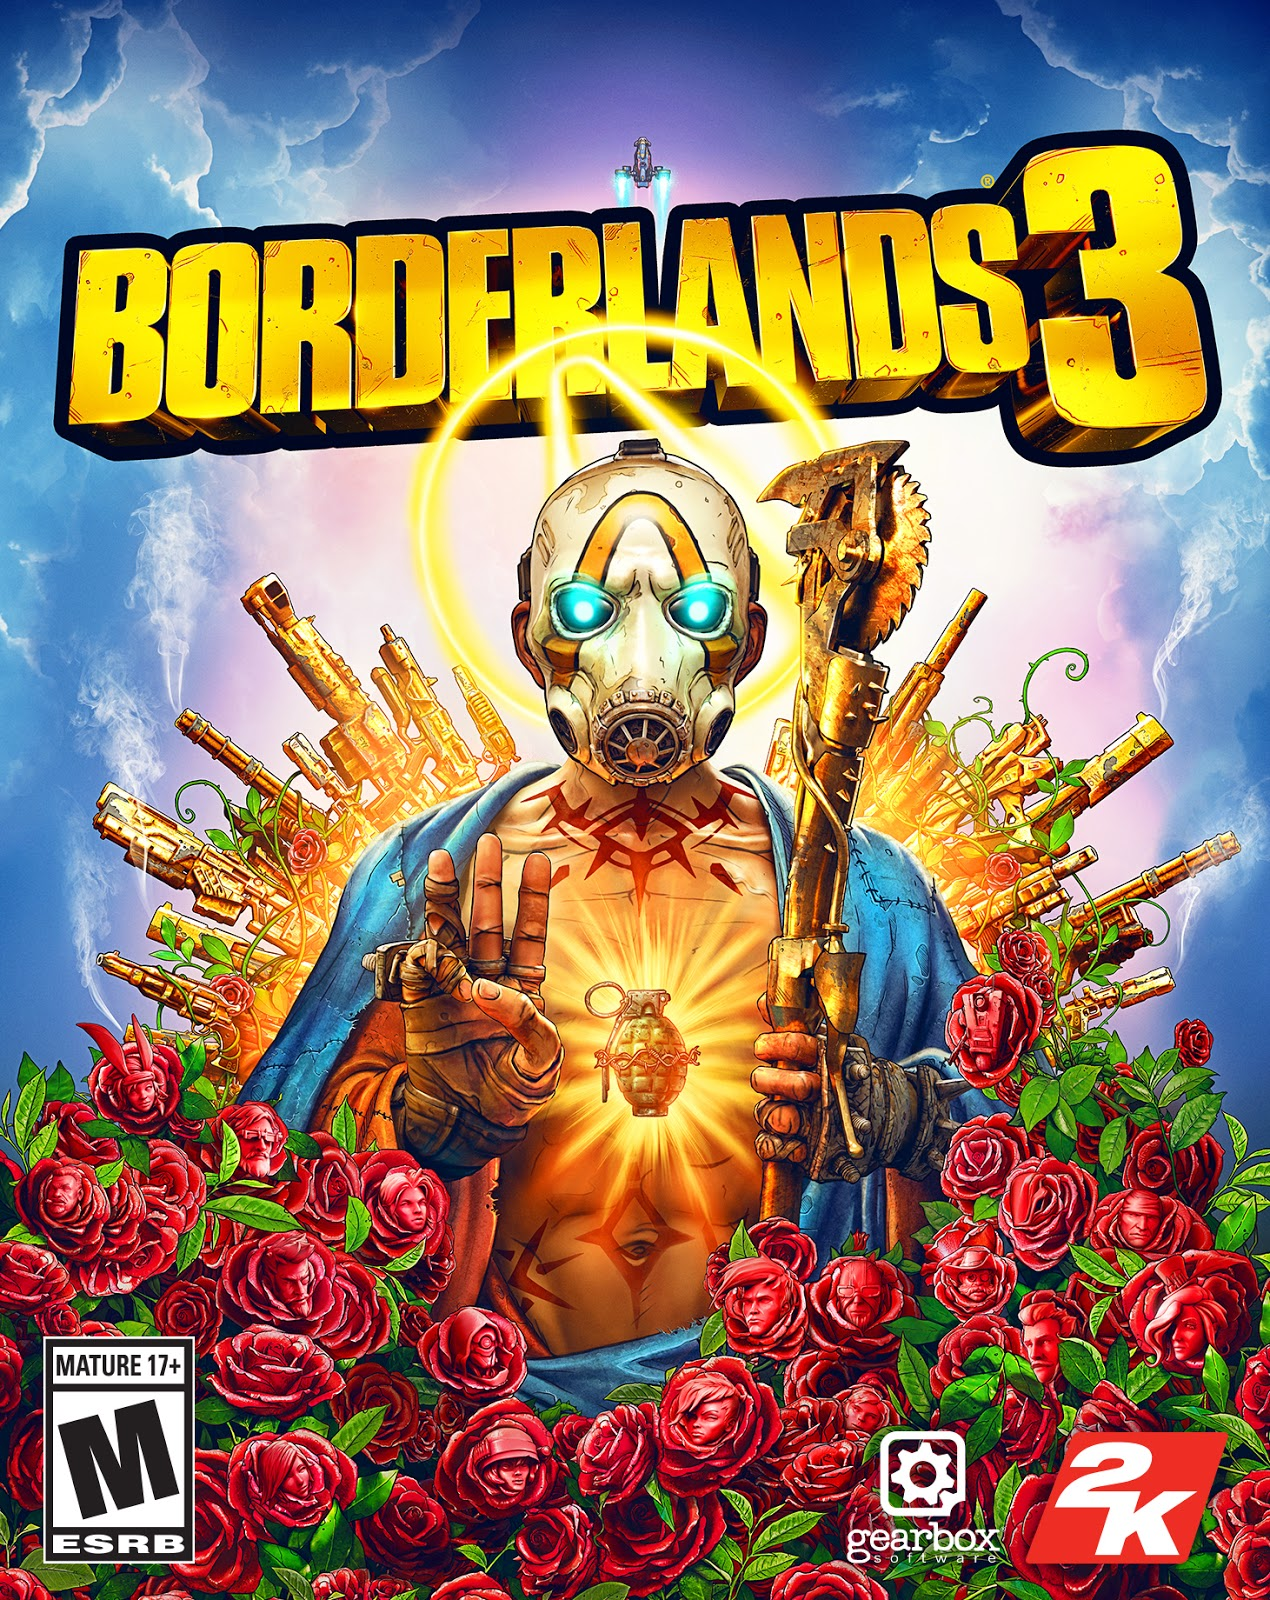 Descargar Borderlands 3